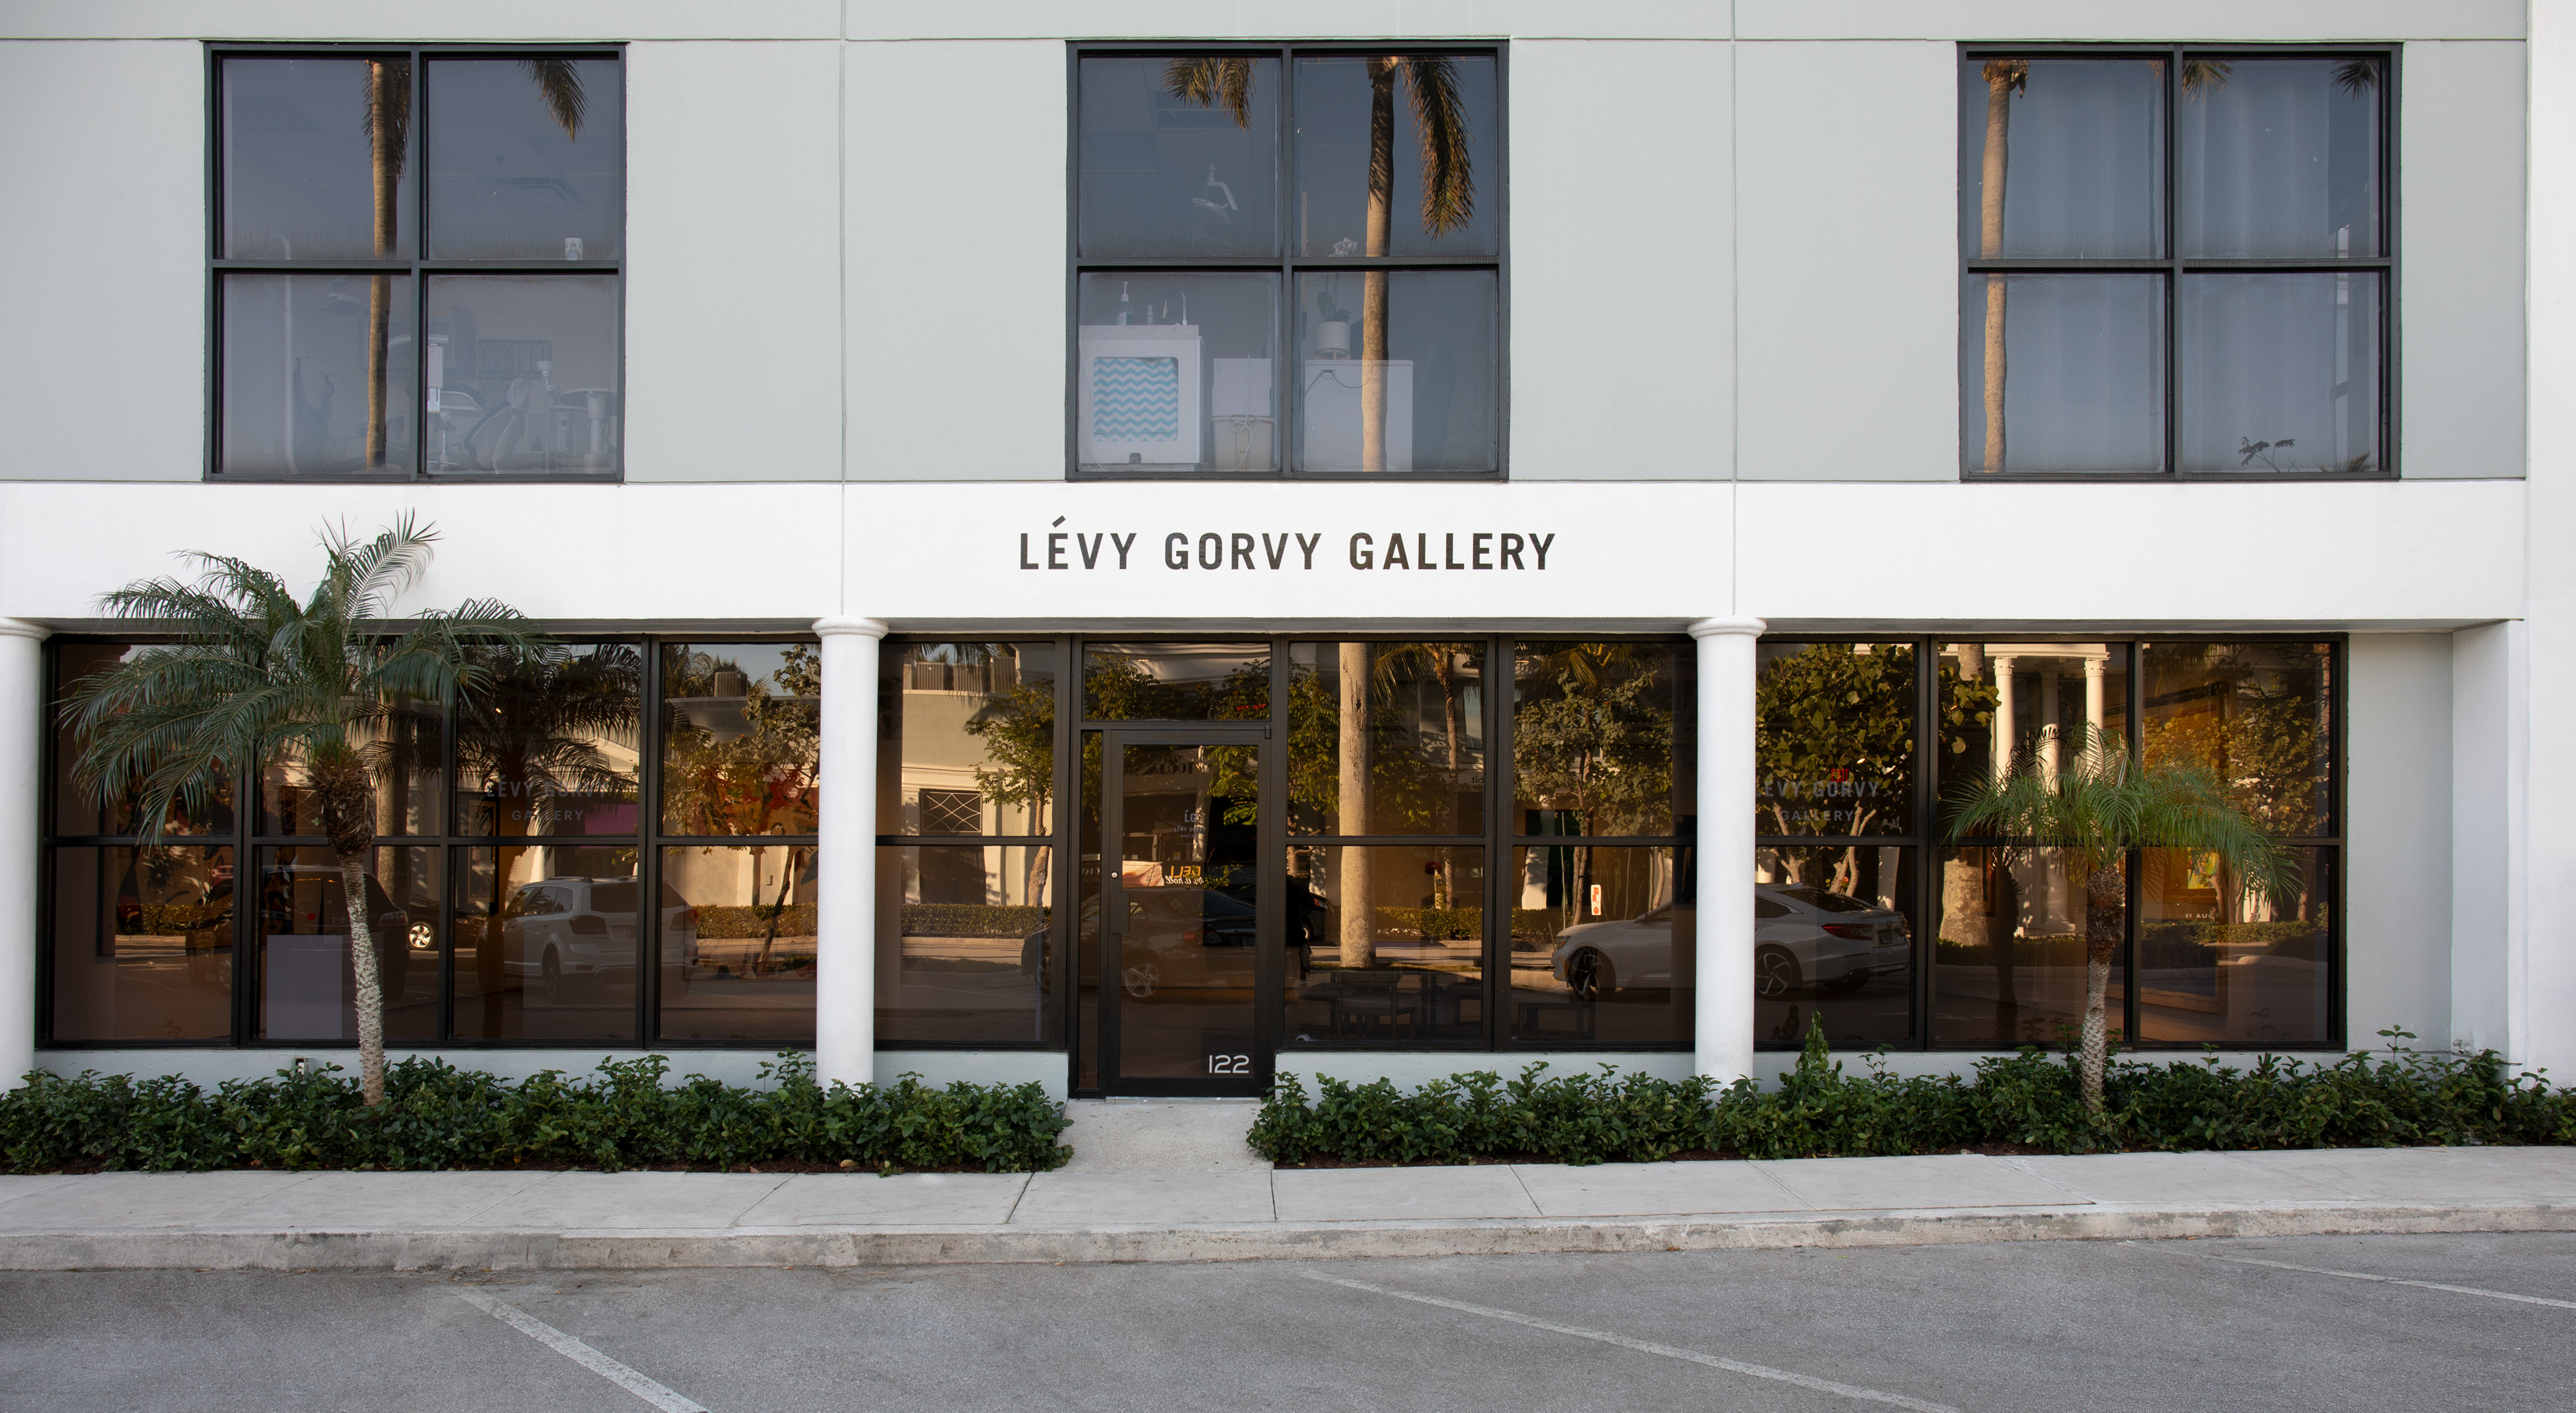 The exterior of Lévy Gorvy gallery in the Royal Poinciana Plaza, Palm Beach. Photo: Oriol Tarridas